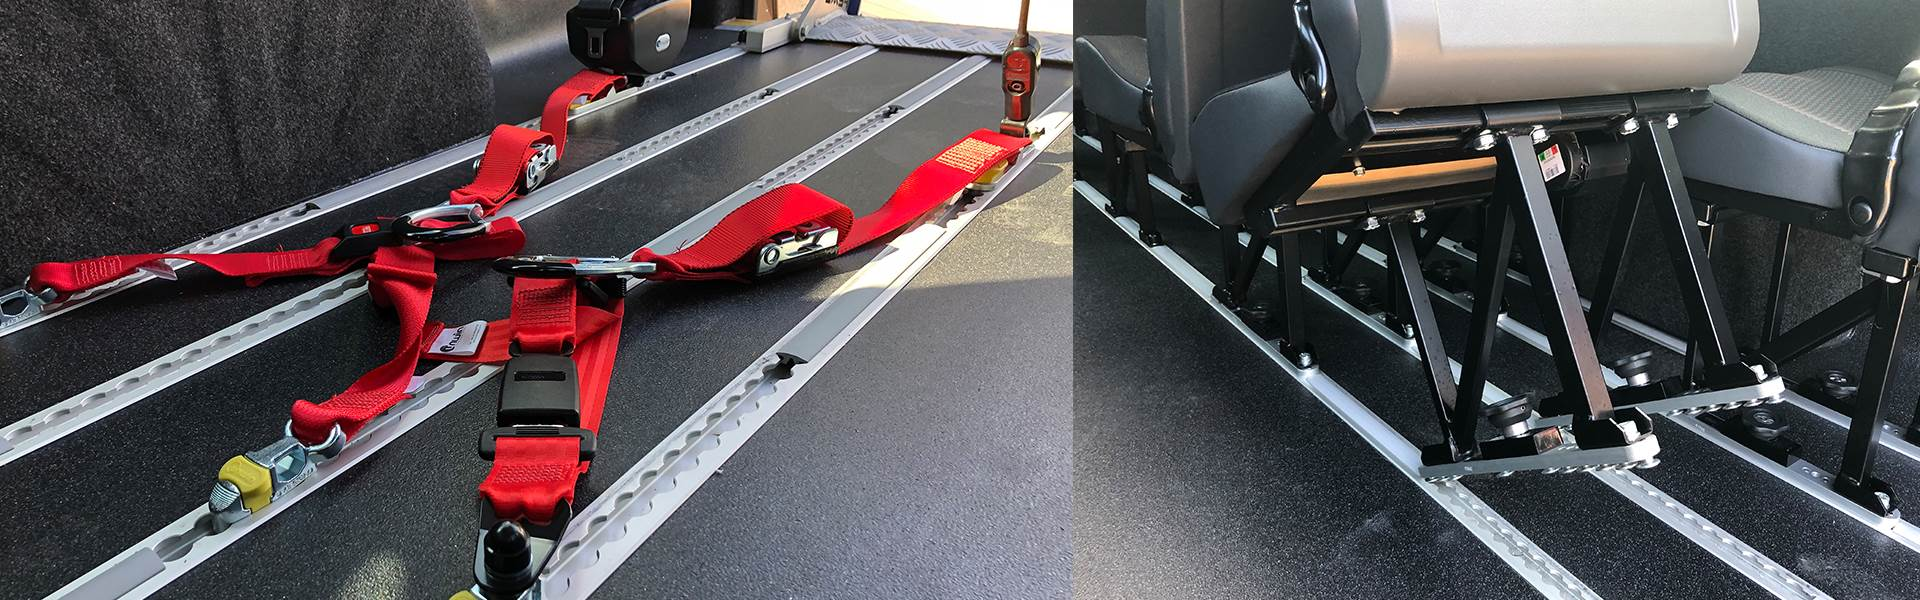 Minibus Conversion with Restraints for Wheelchairs